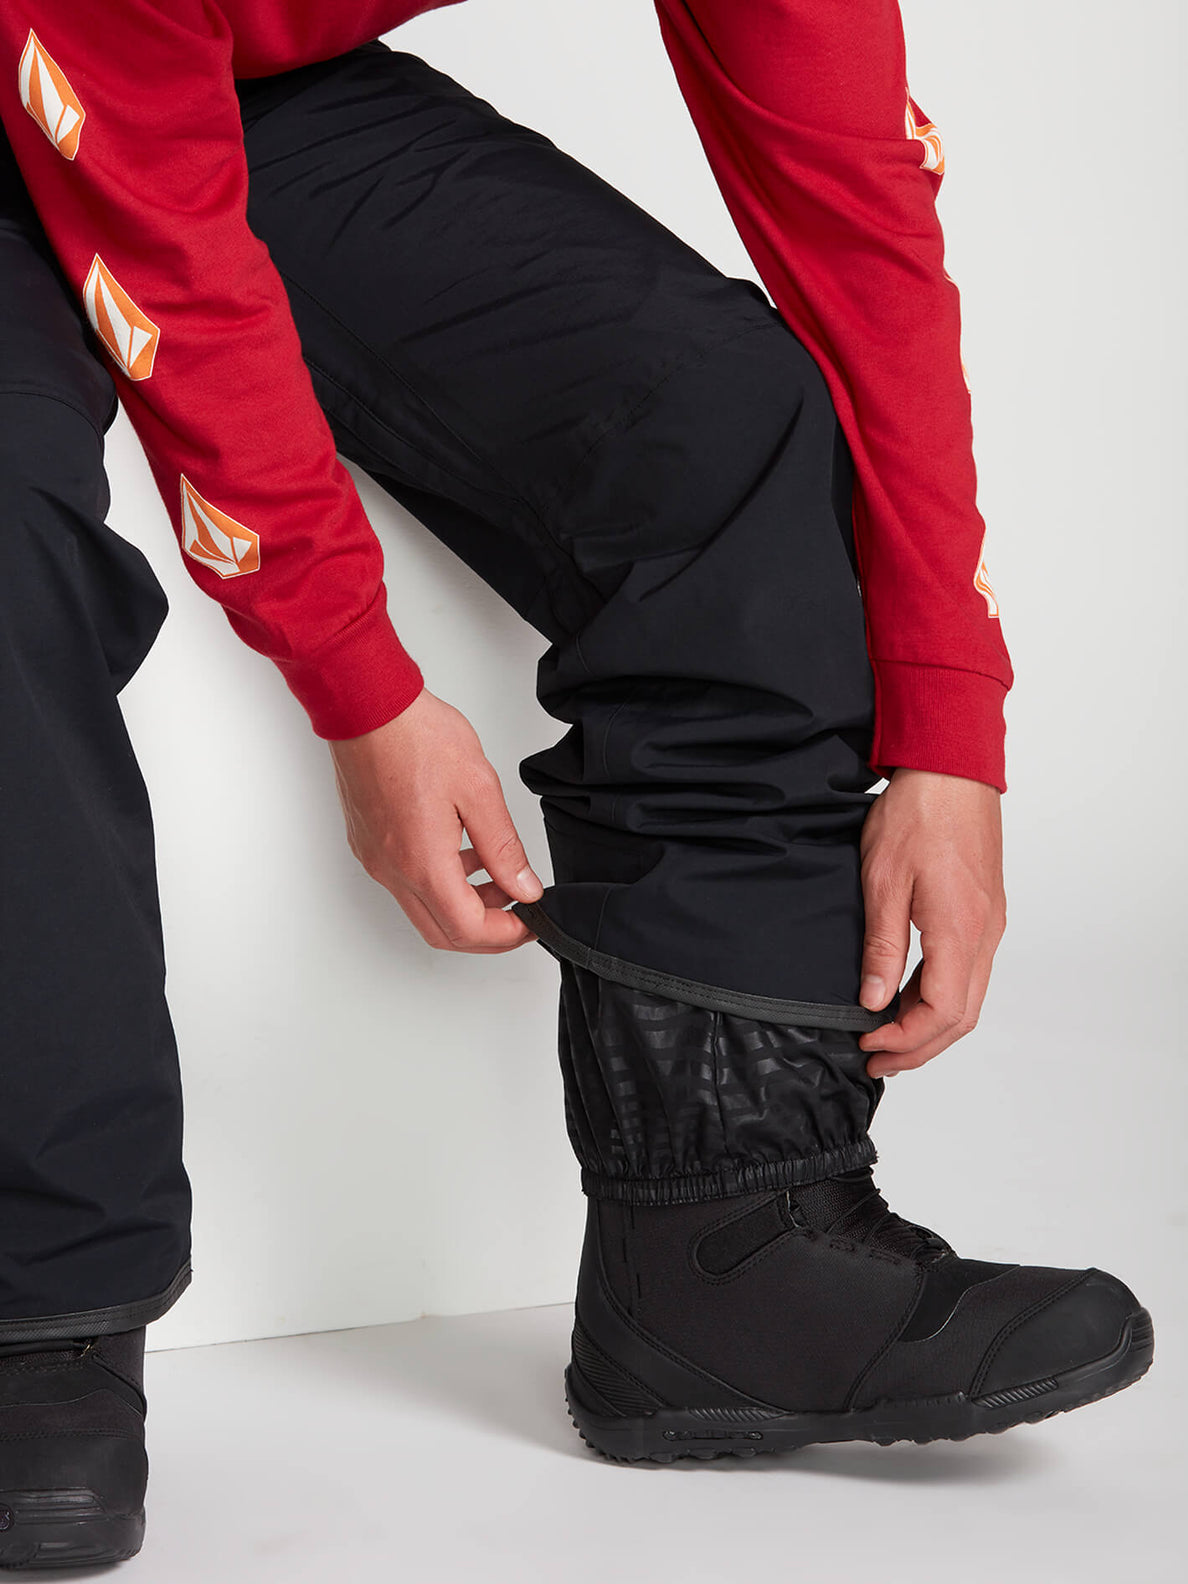 L Gore-Tex Pants - Black (G1351904_BLK) [06]